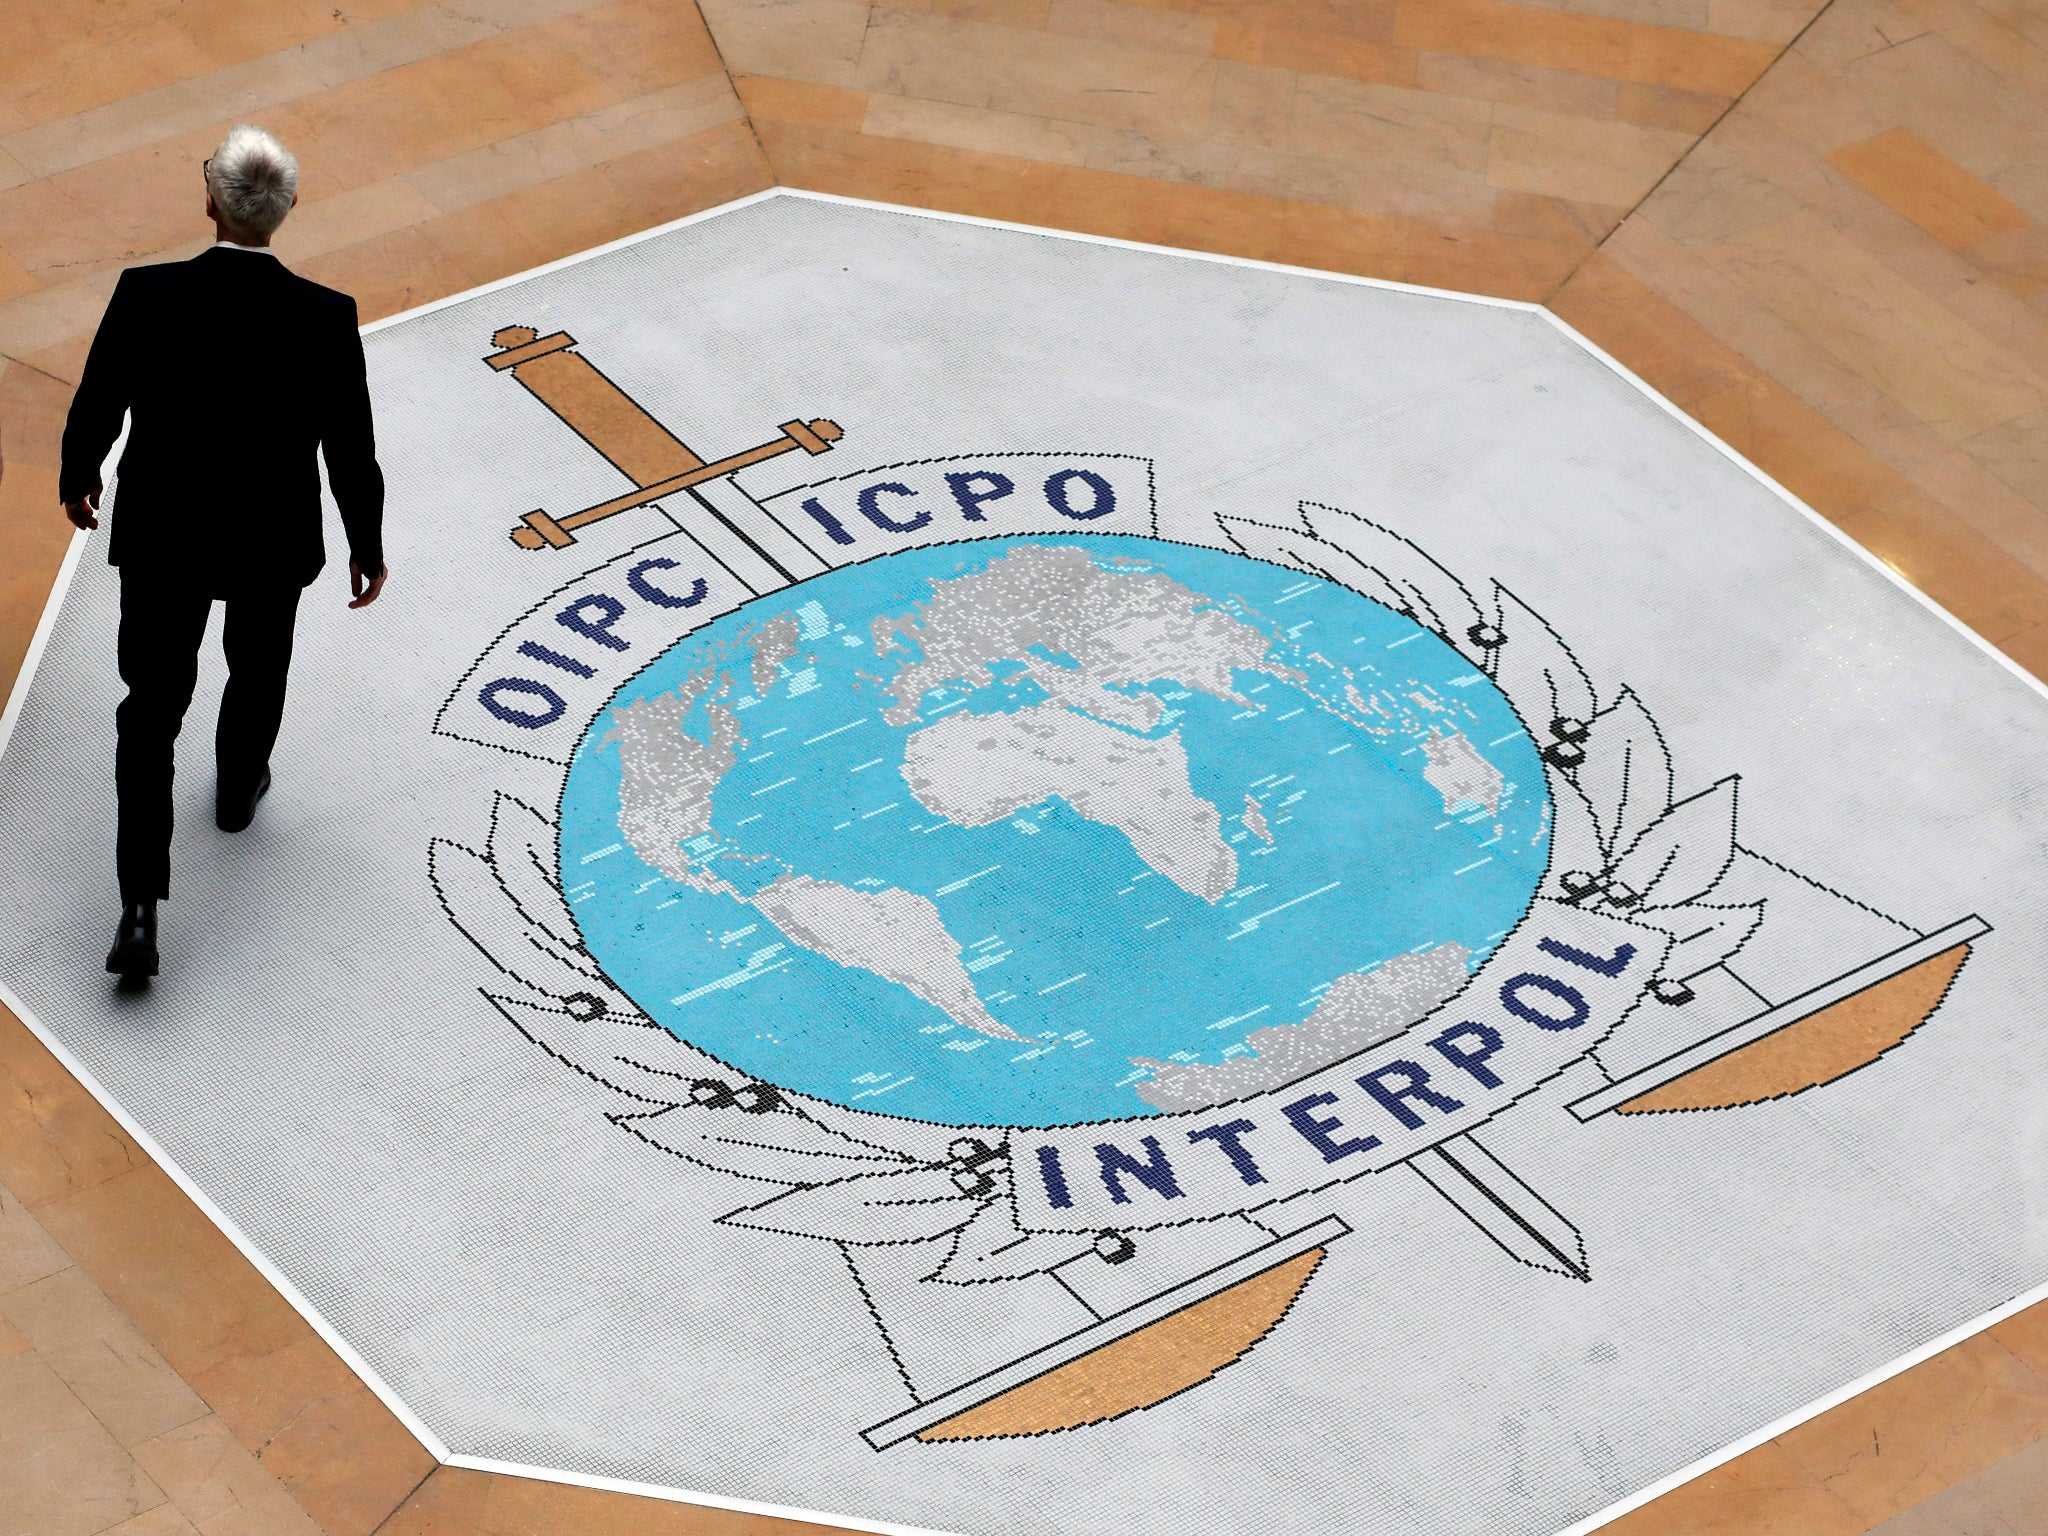 Russian could become new Interpol chief: 'Putin will attempt his most audacious operation yet'